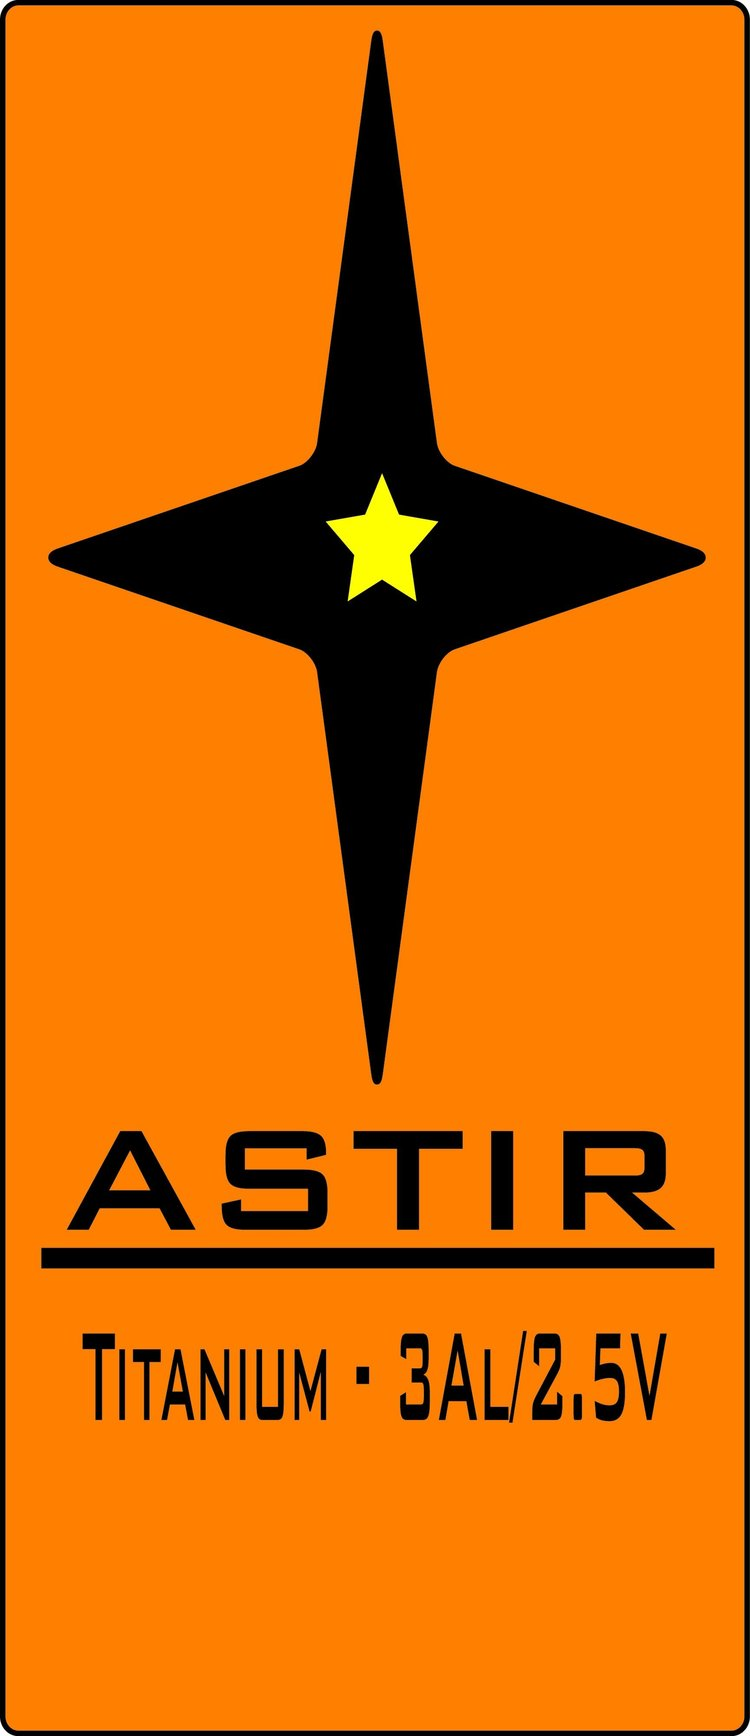 Astir Bicycles & Frames